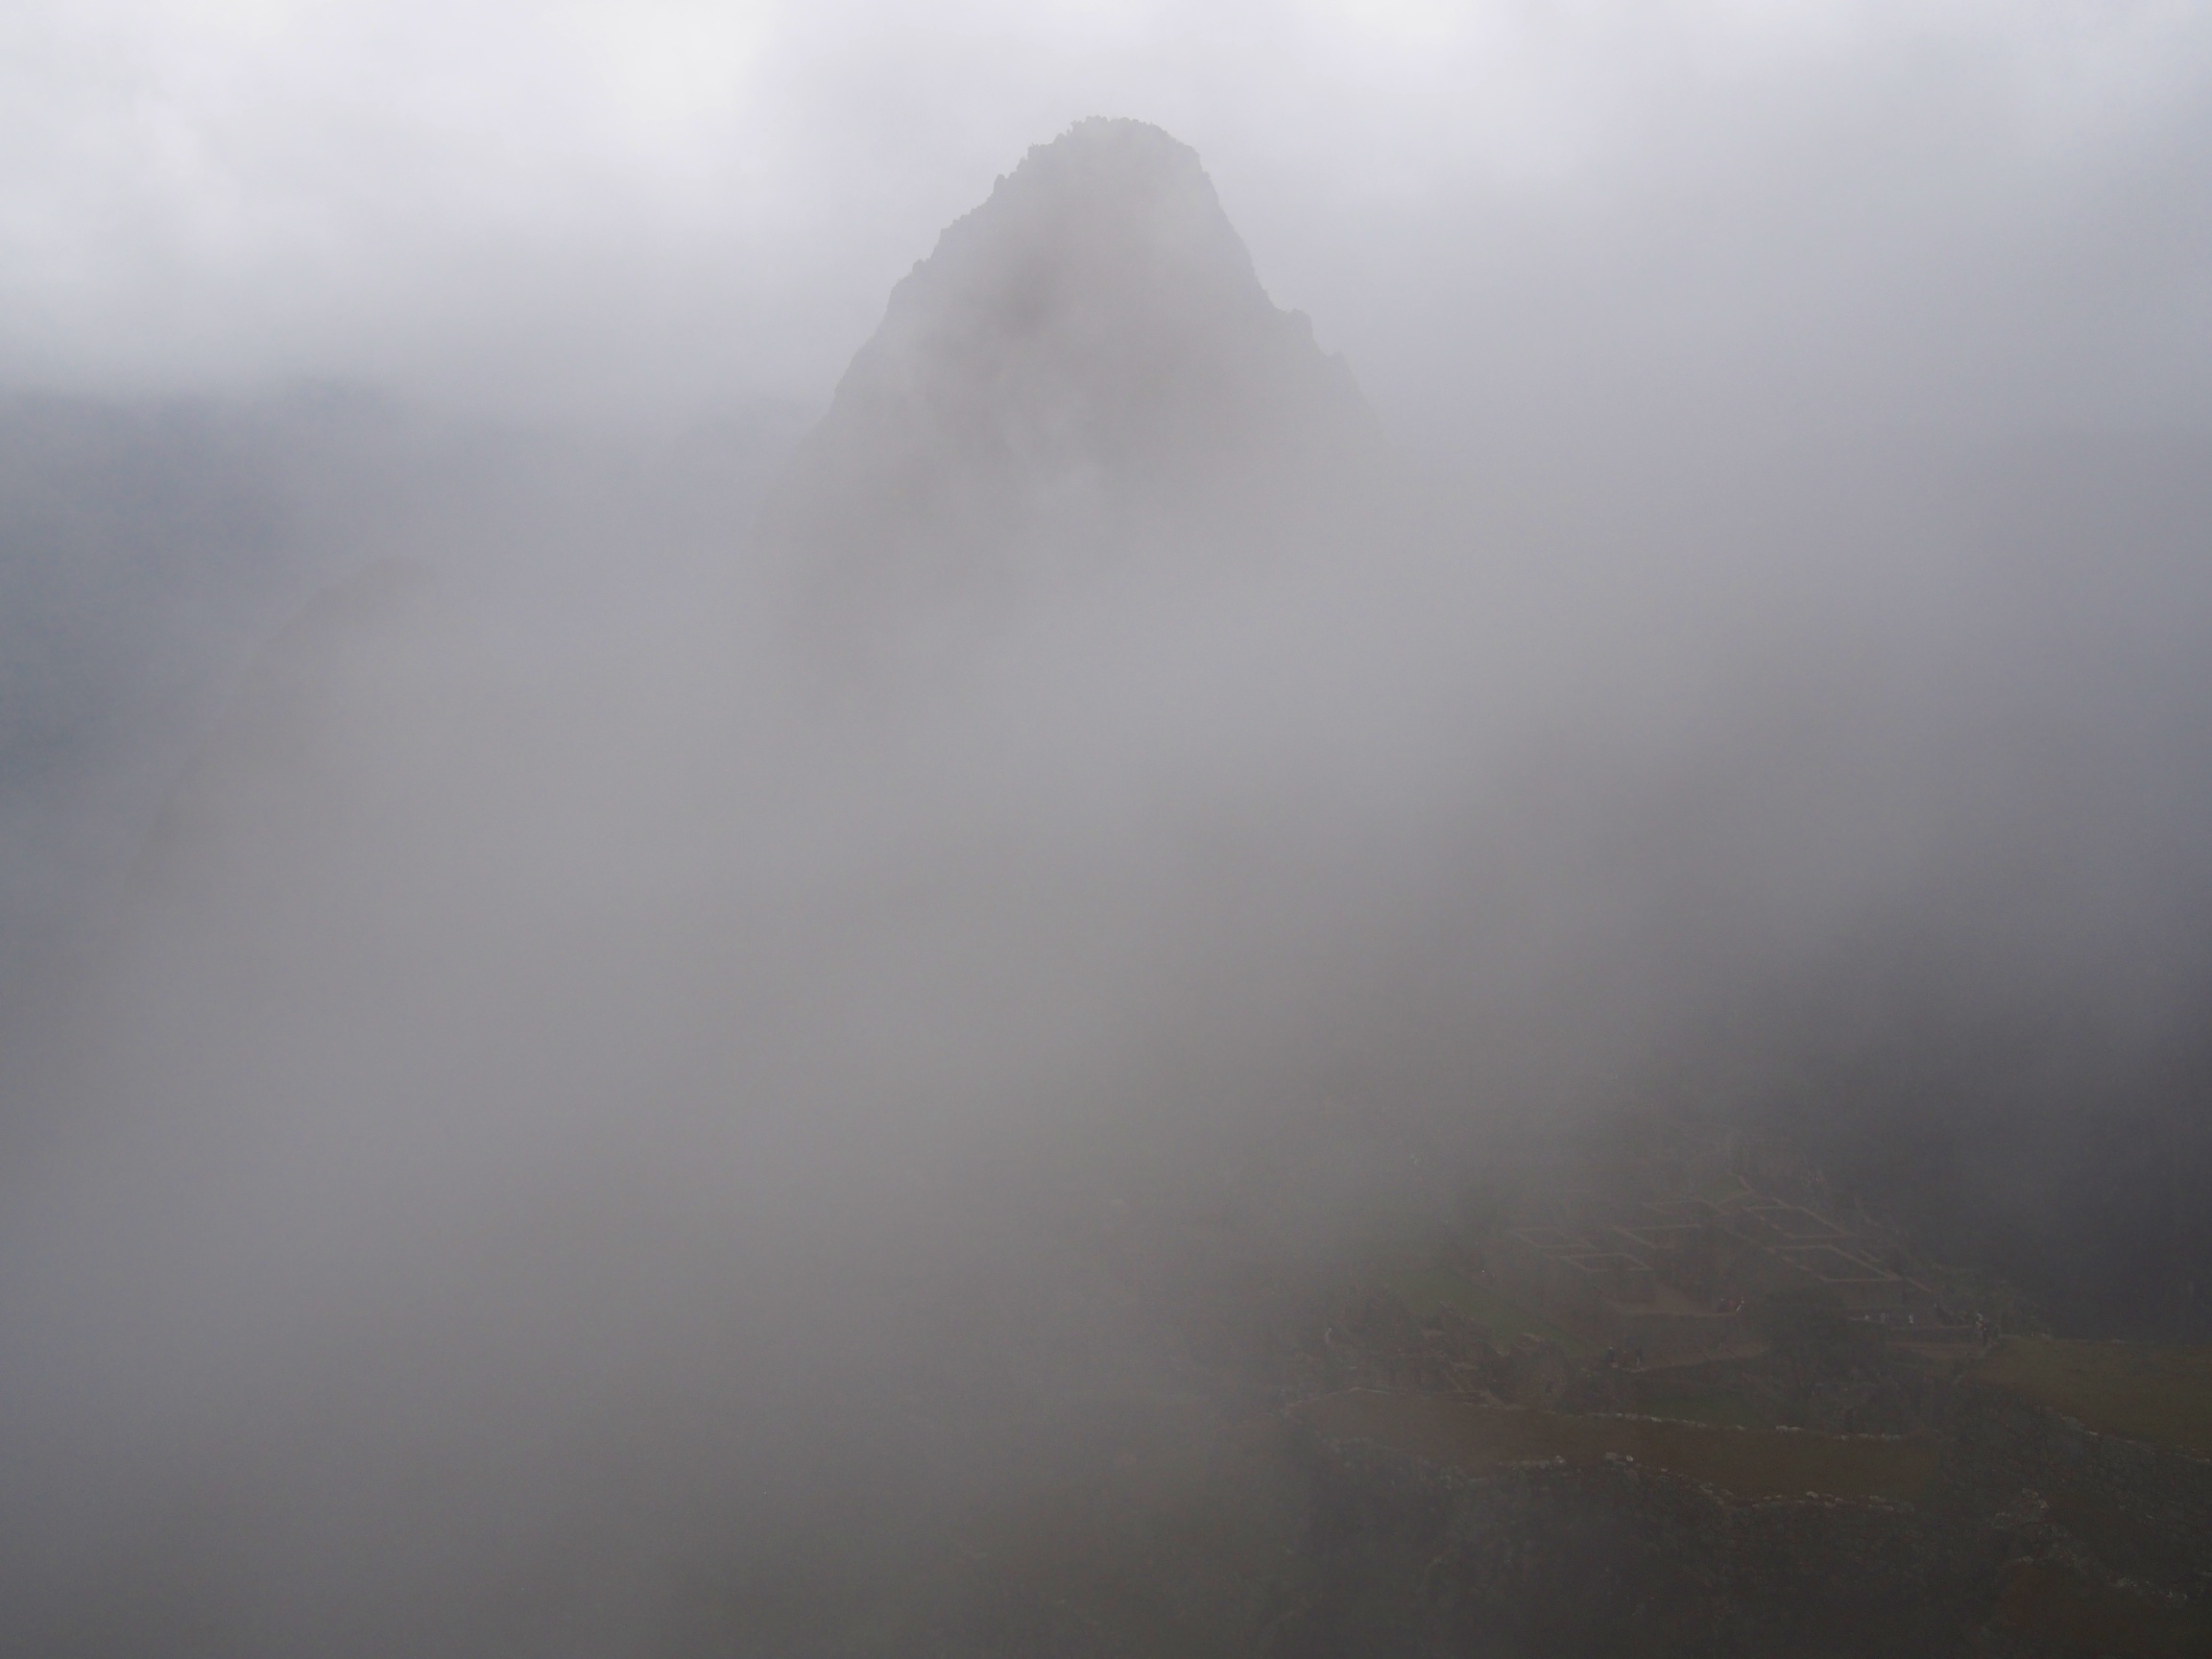 Although we were bummed it wasn't a clear day, we got to see Machu Picchu completely covered in fog, giving us a good understanding as to why the site went undiscovered for so long!